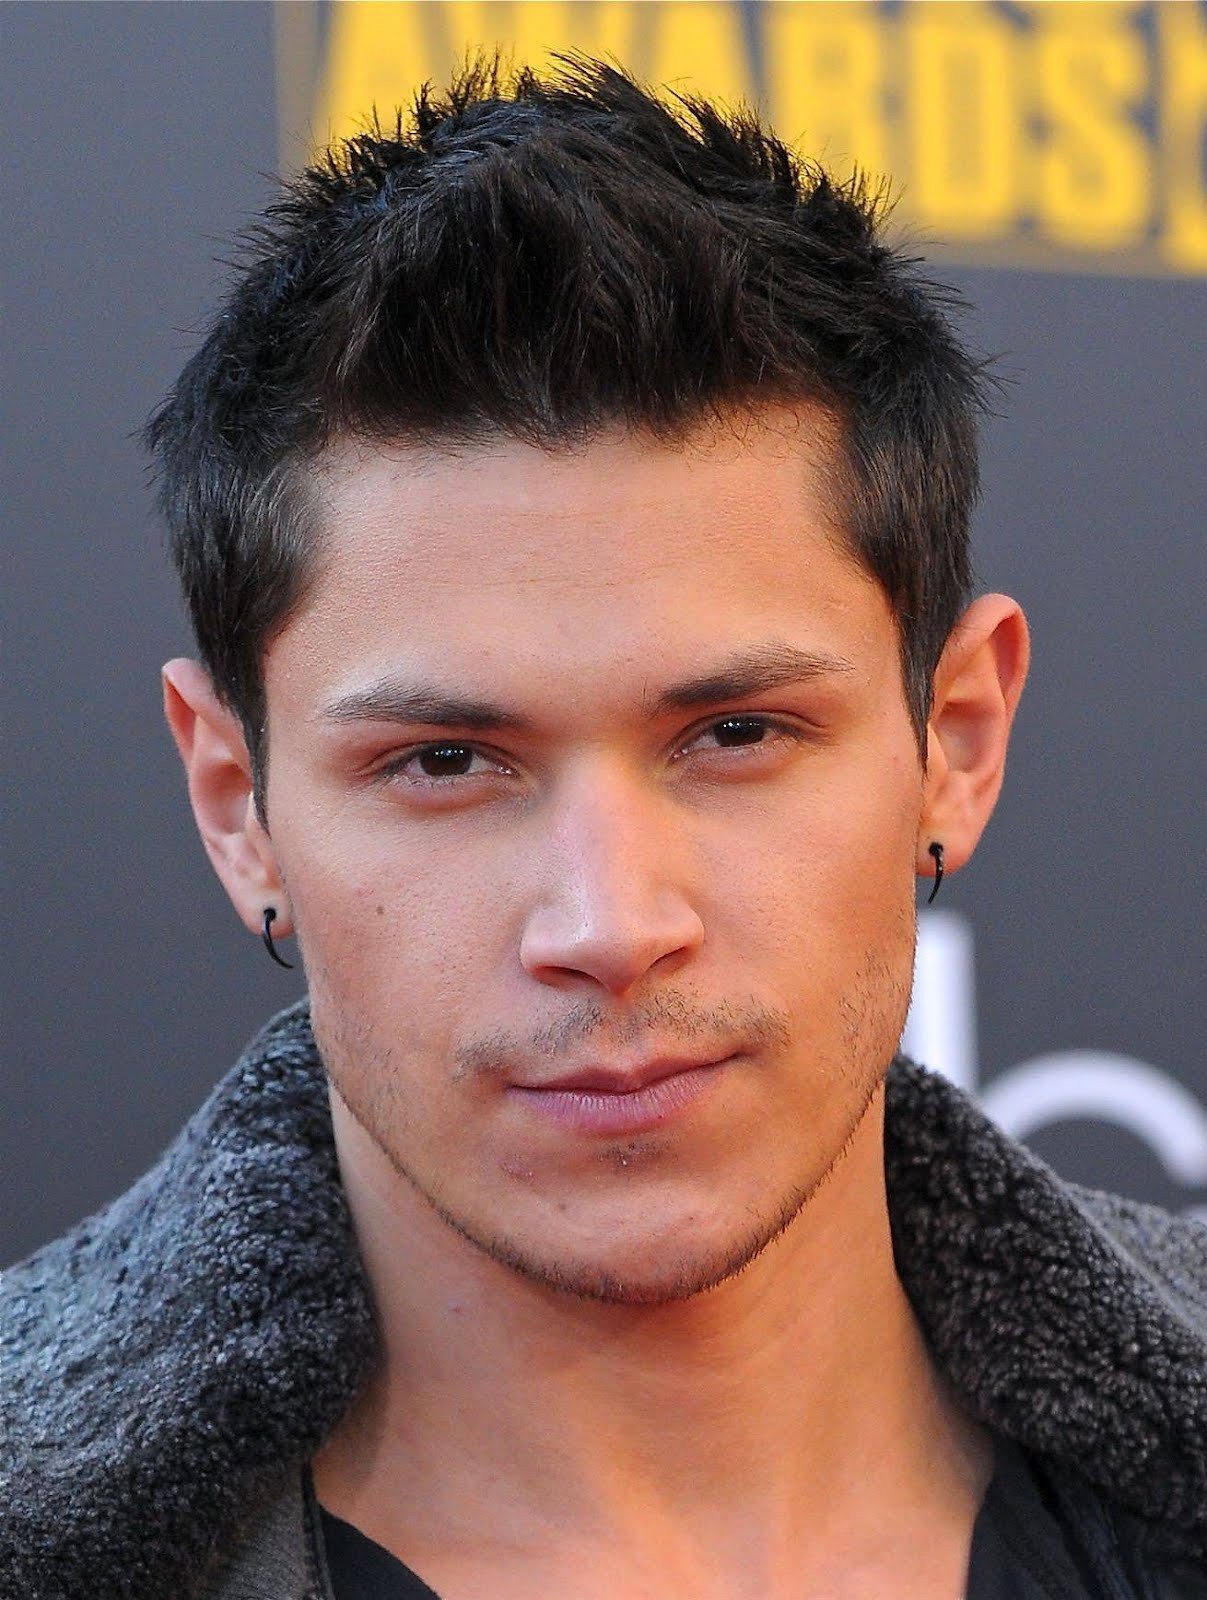 Best ideas about Hairstyle For Boys . Save or Pin 25 Best Short Spiky Haircuts For Guys Now.